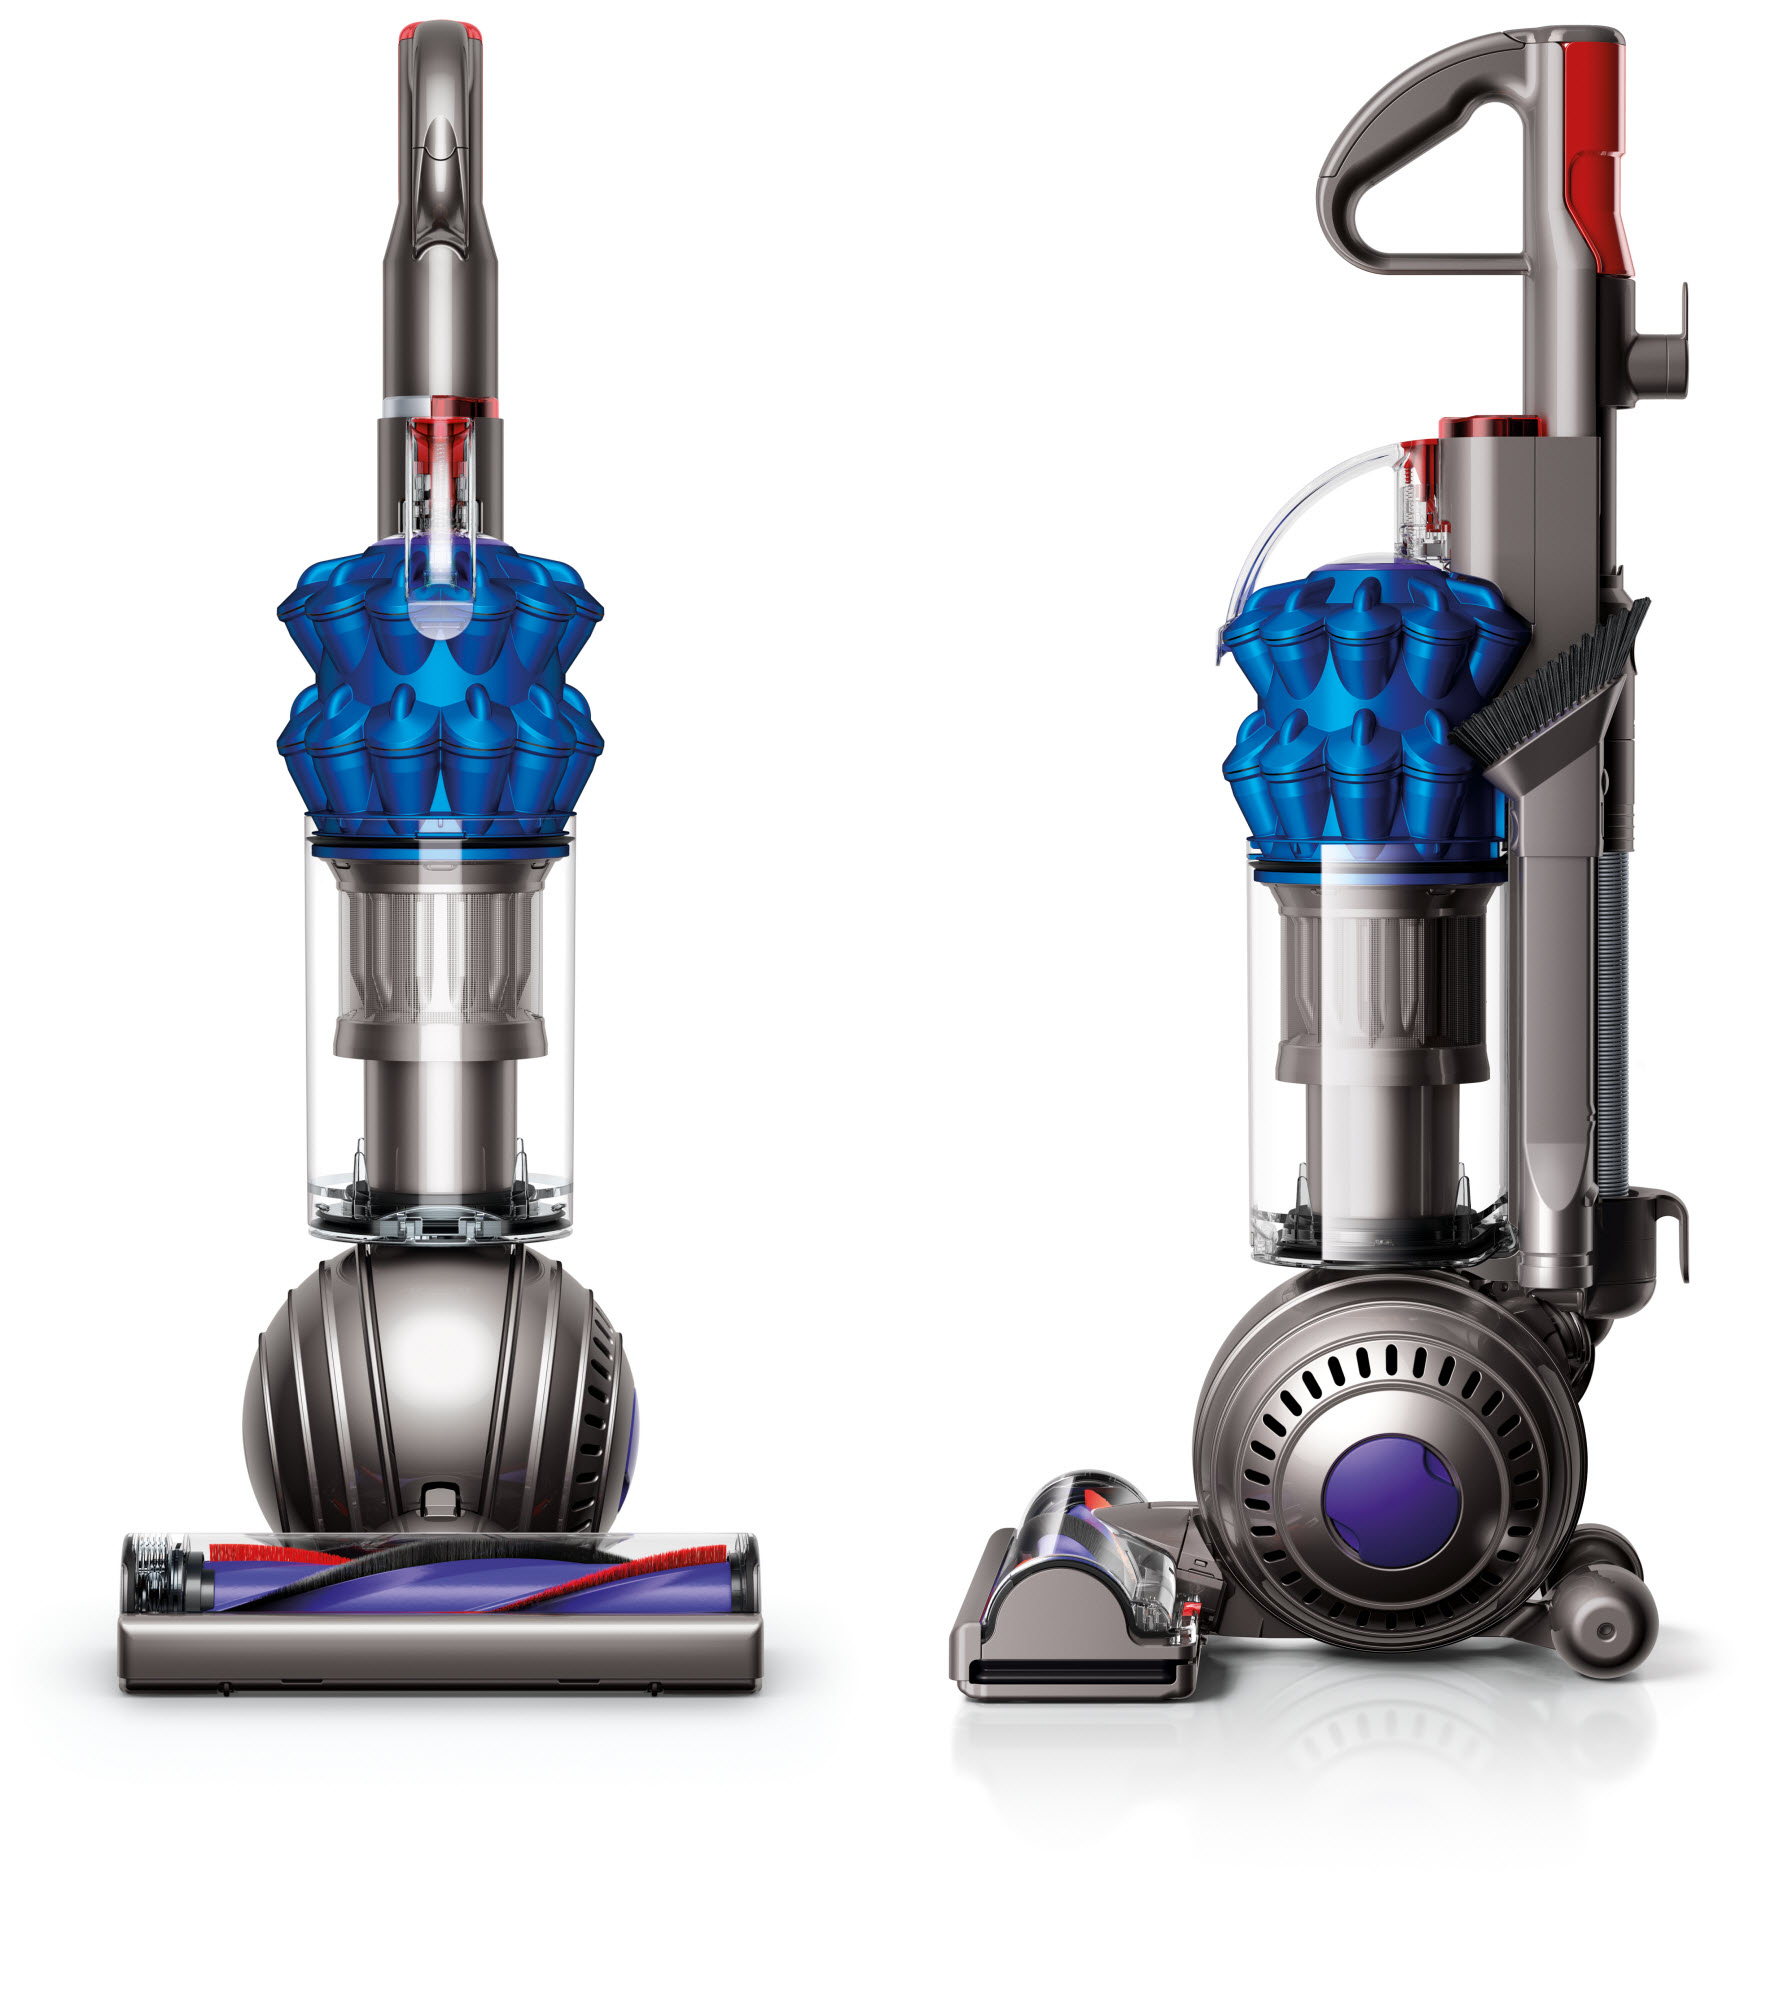 Dyson DC50 Ball Compact Allergy HEPA Upright Vacuum + $15 GC